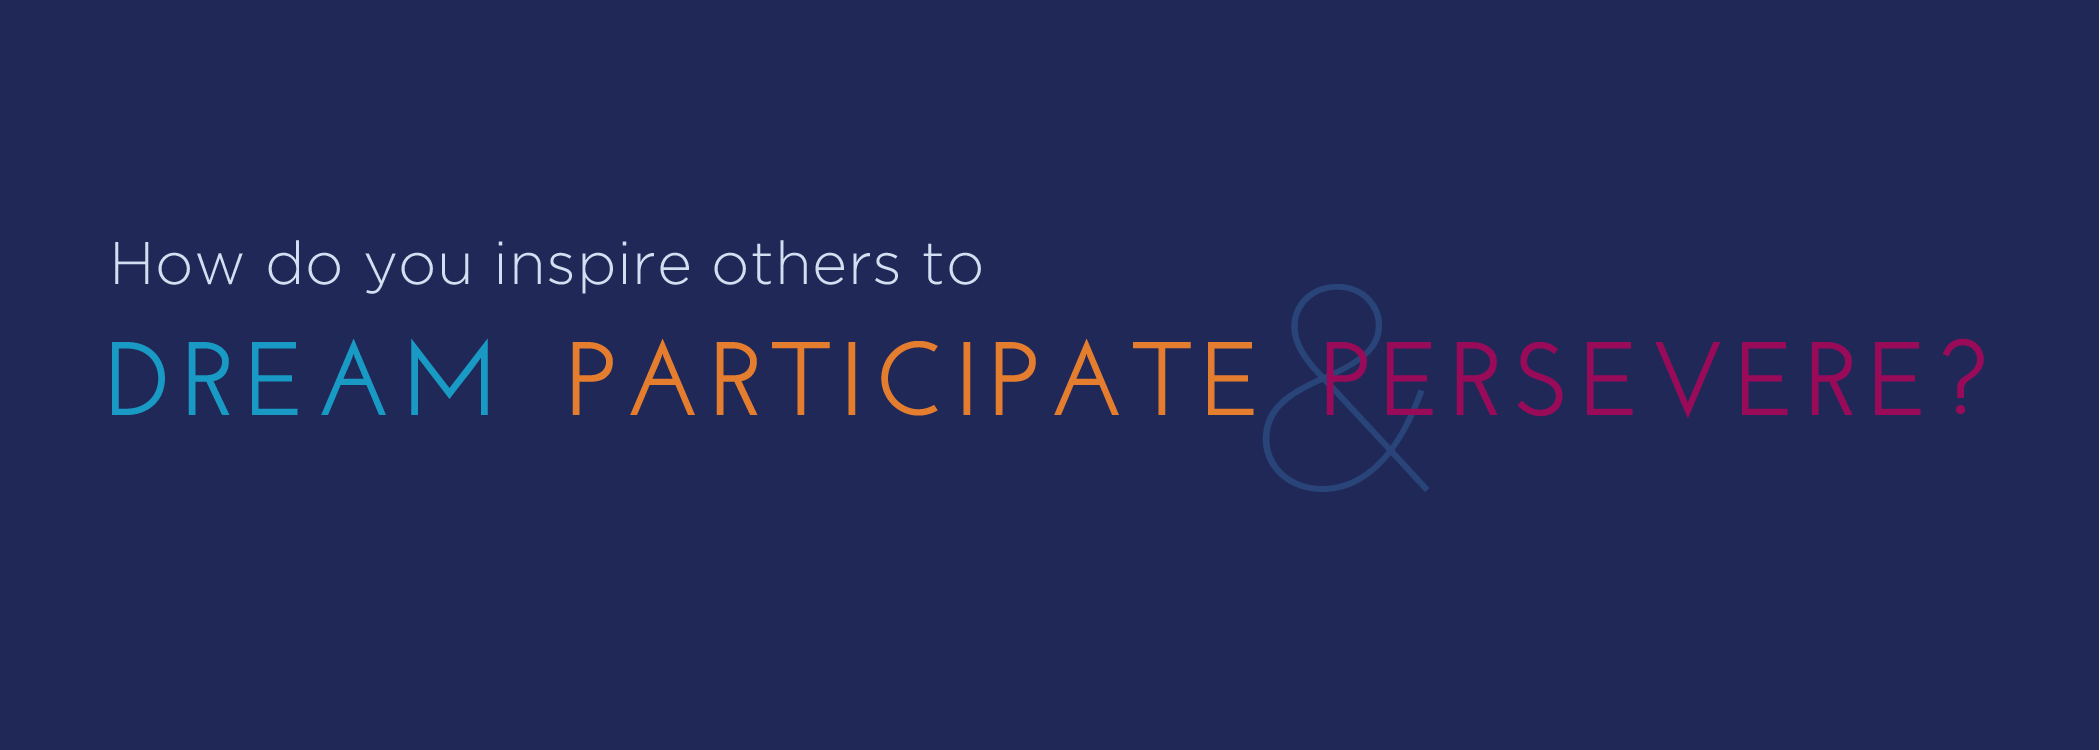 How do you inspire others to dream, participate, and persevere?